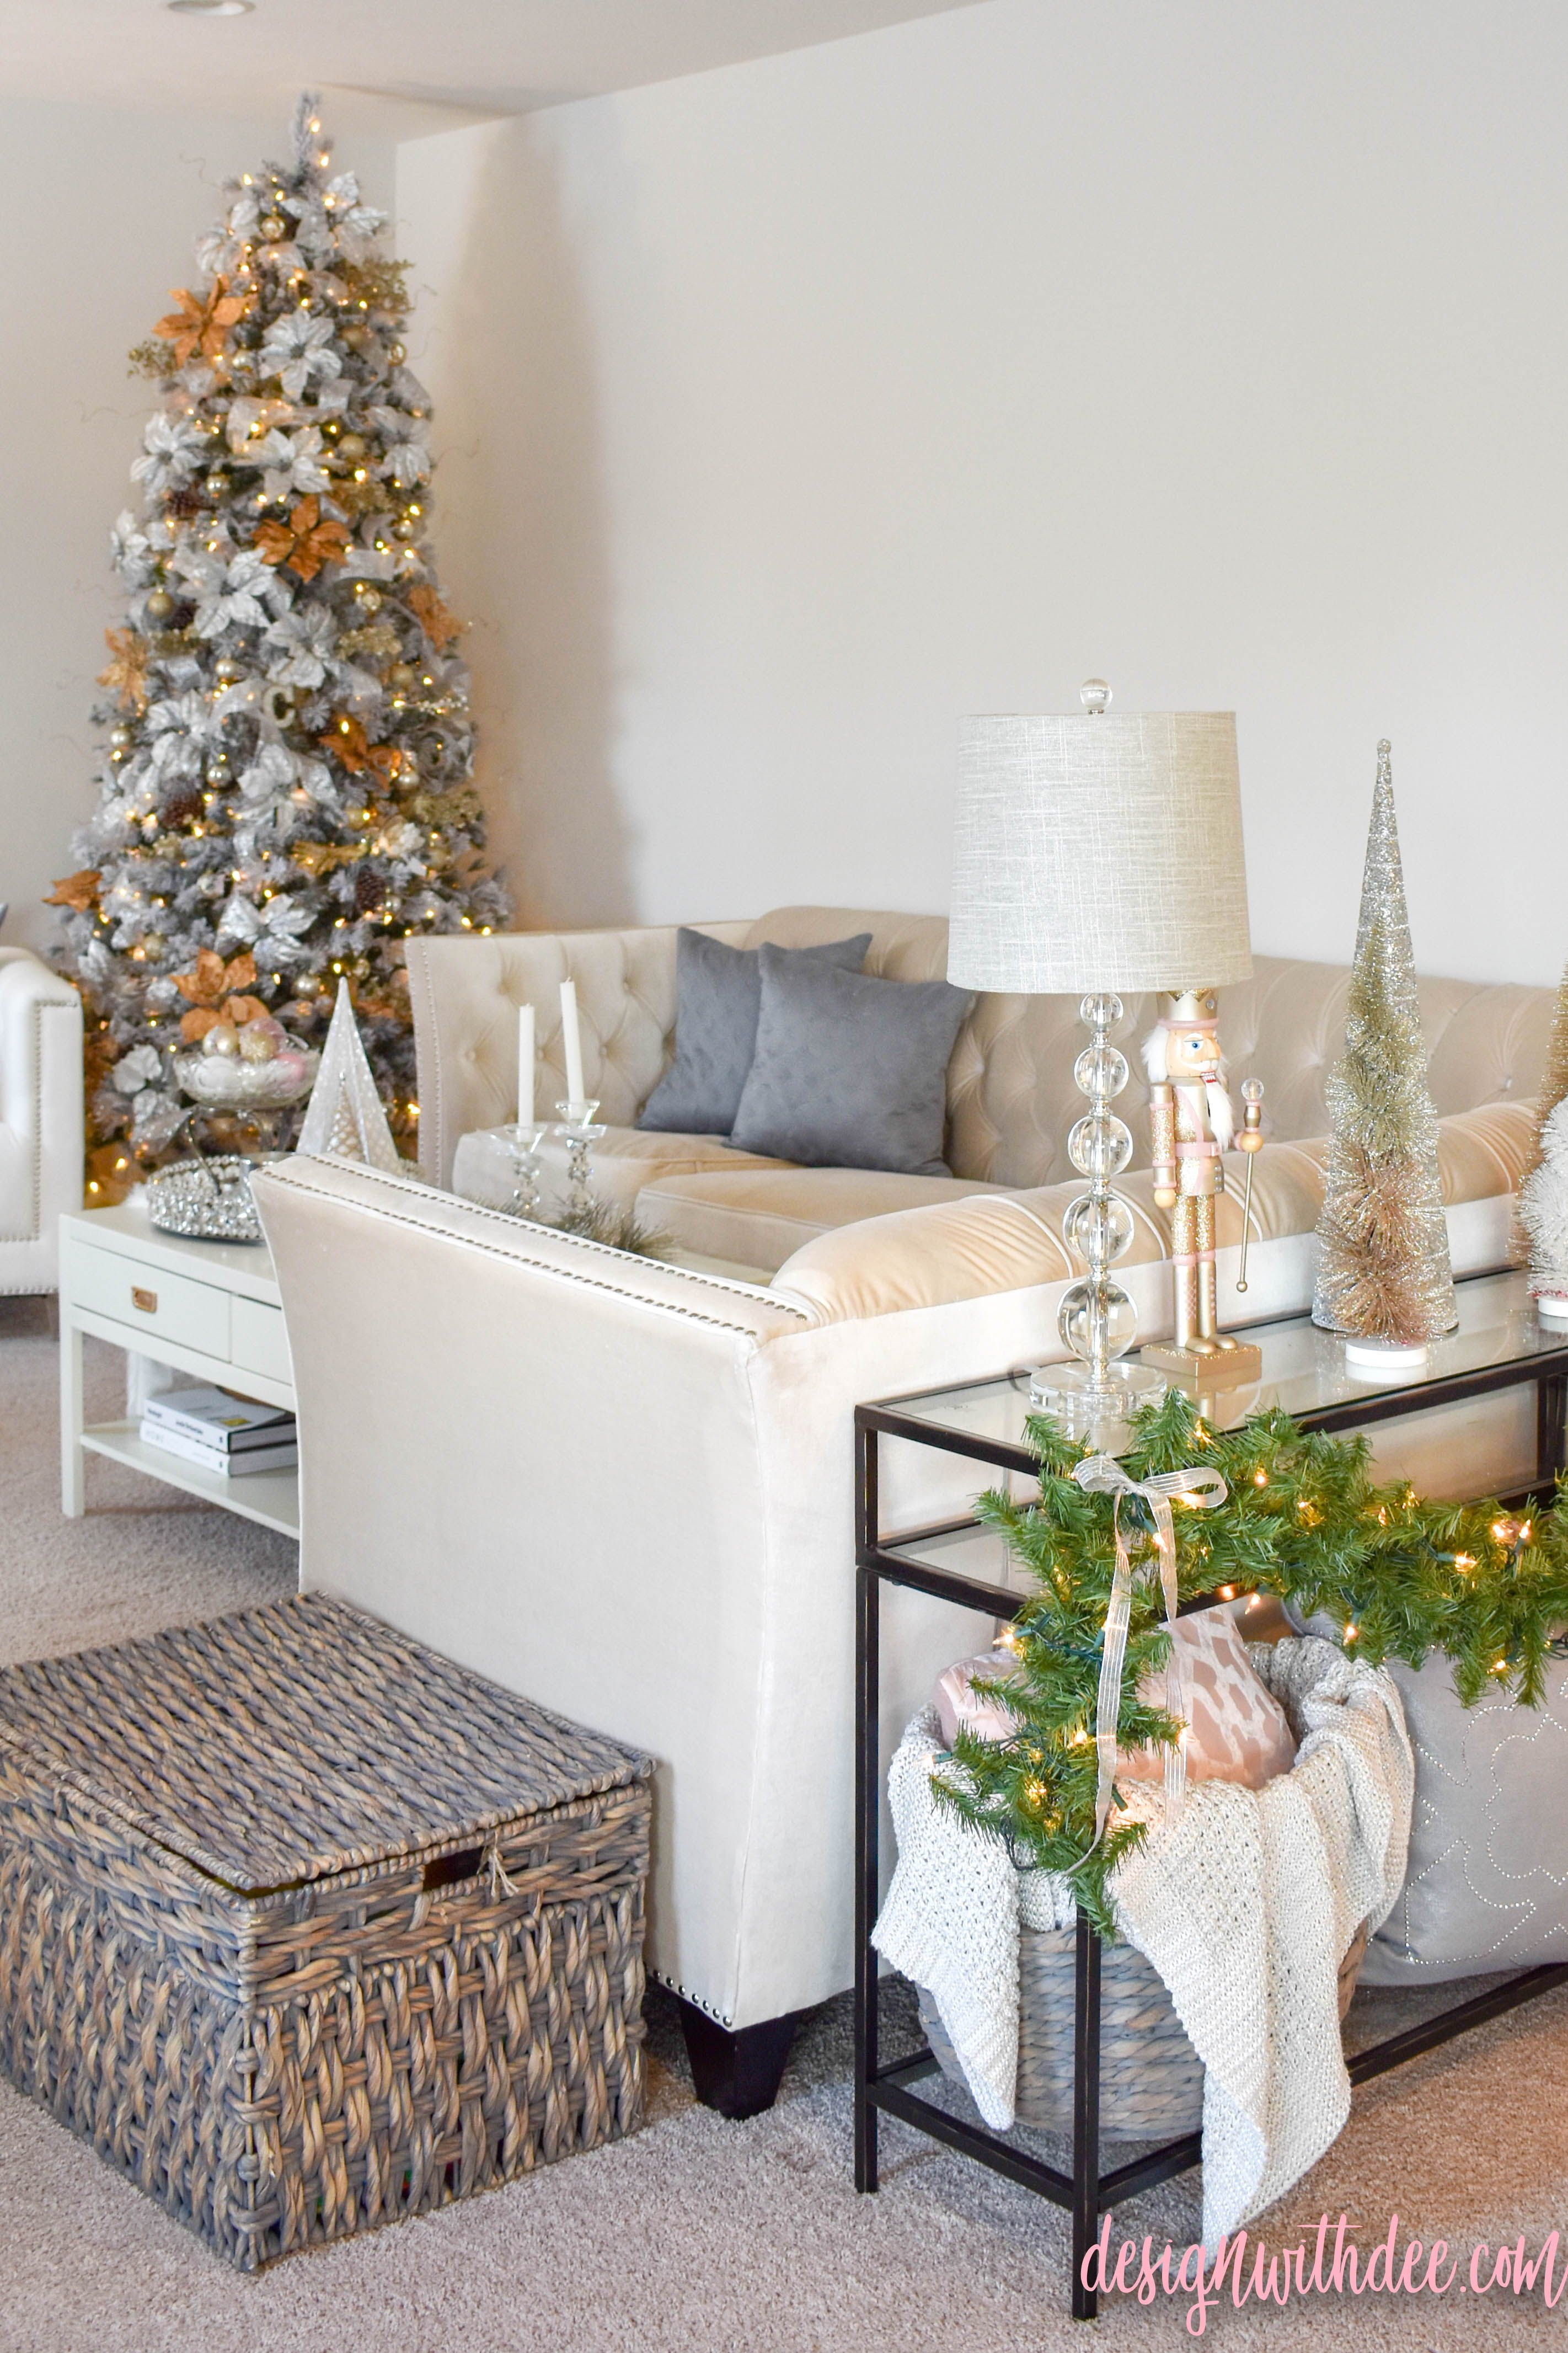 Christmas Living Room Diy Christmas Decorations Easy Christmas Decorations Living Room Easy Christmas Diy